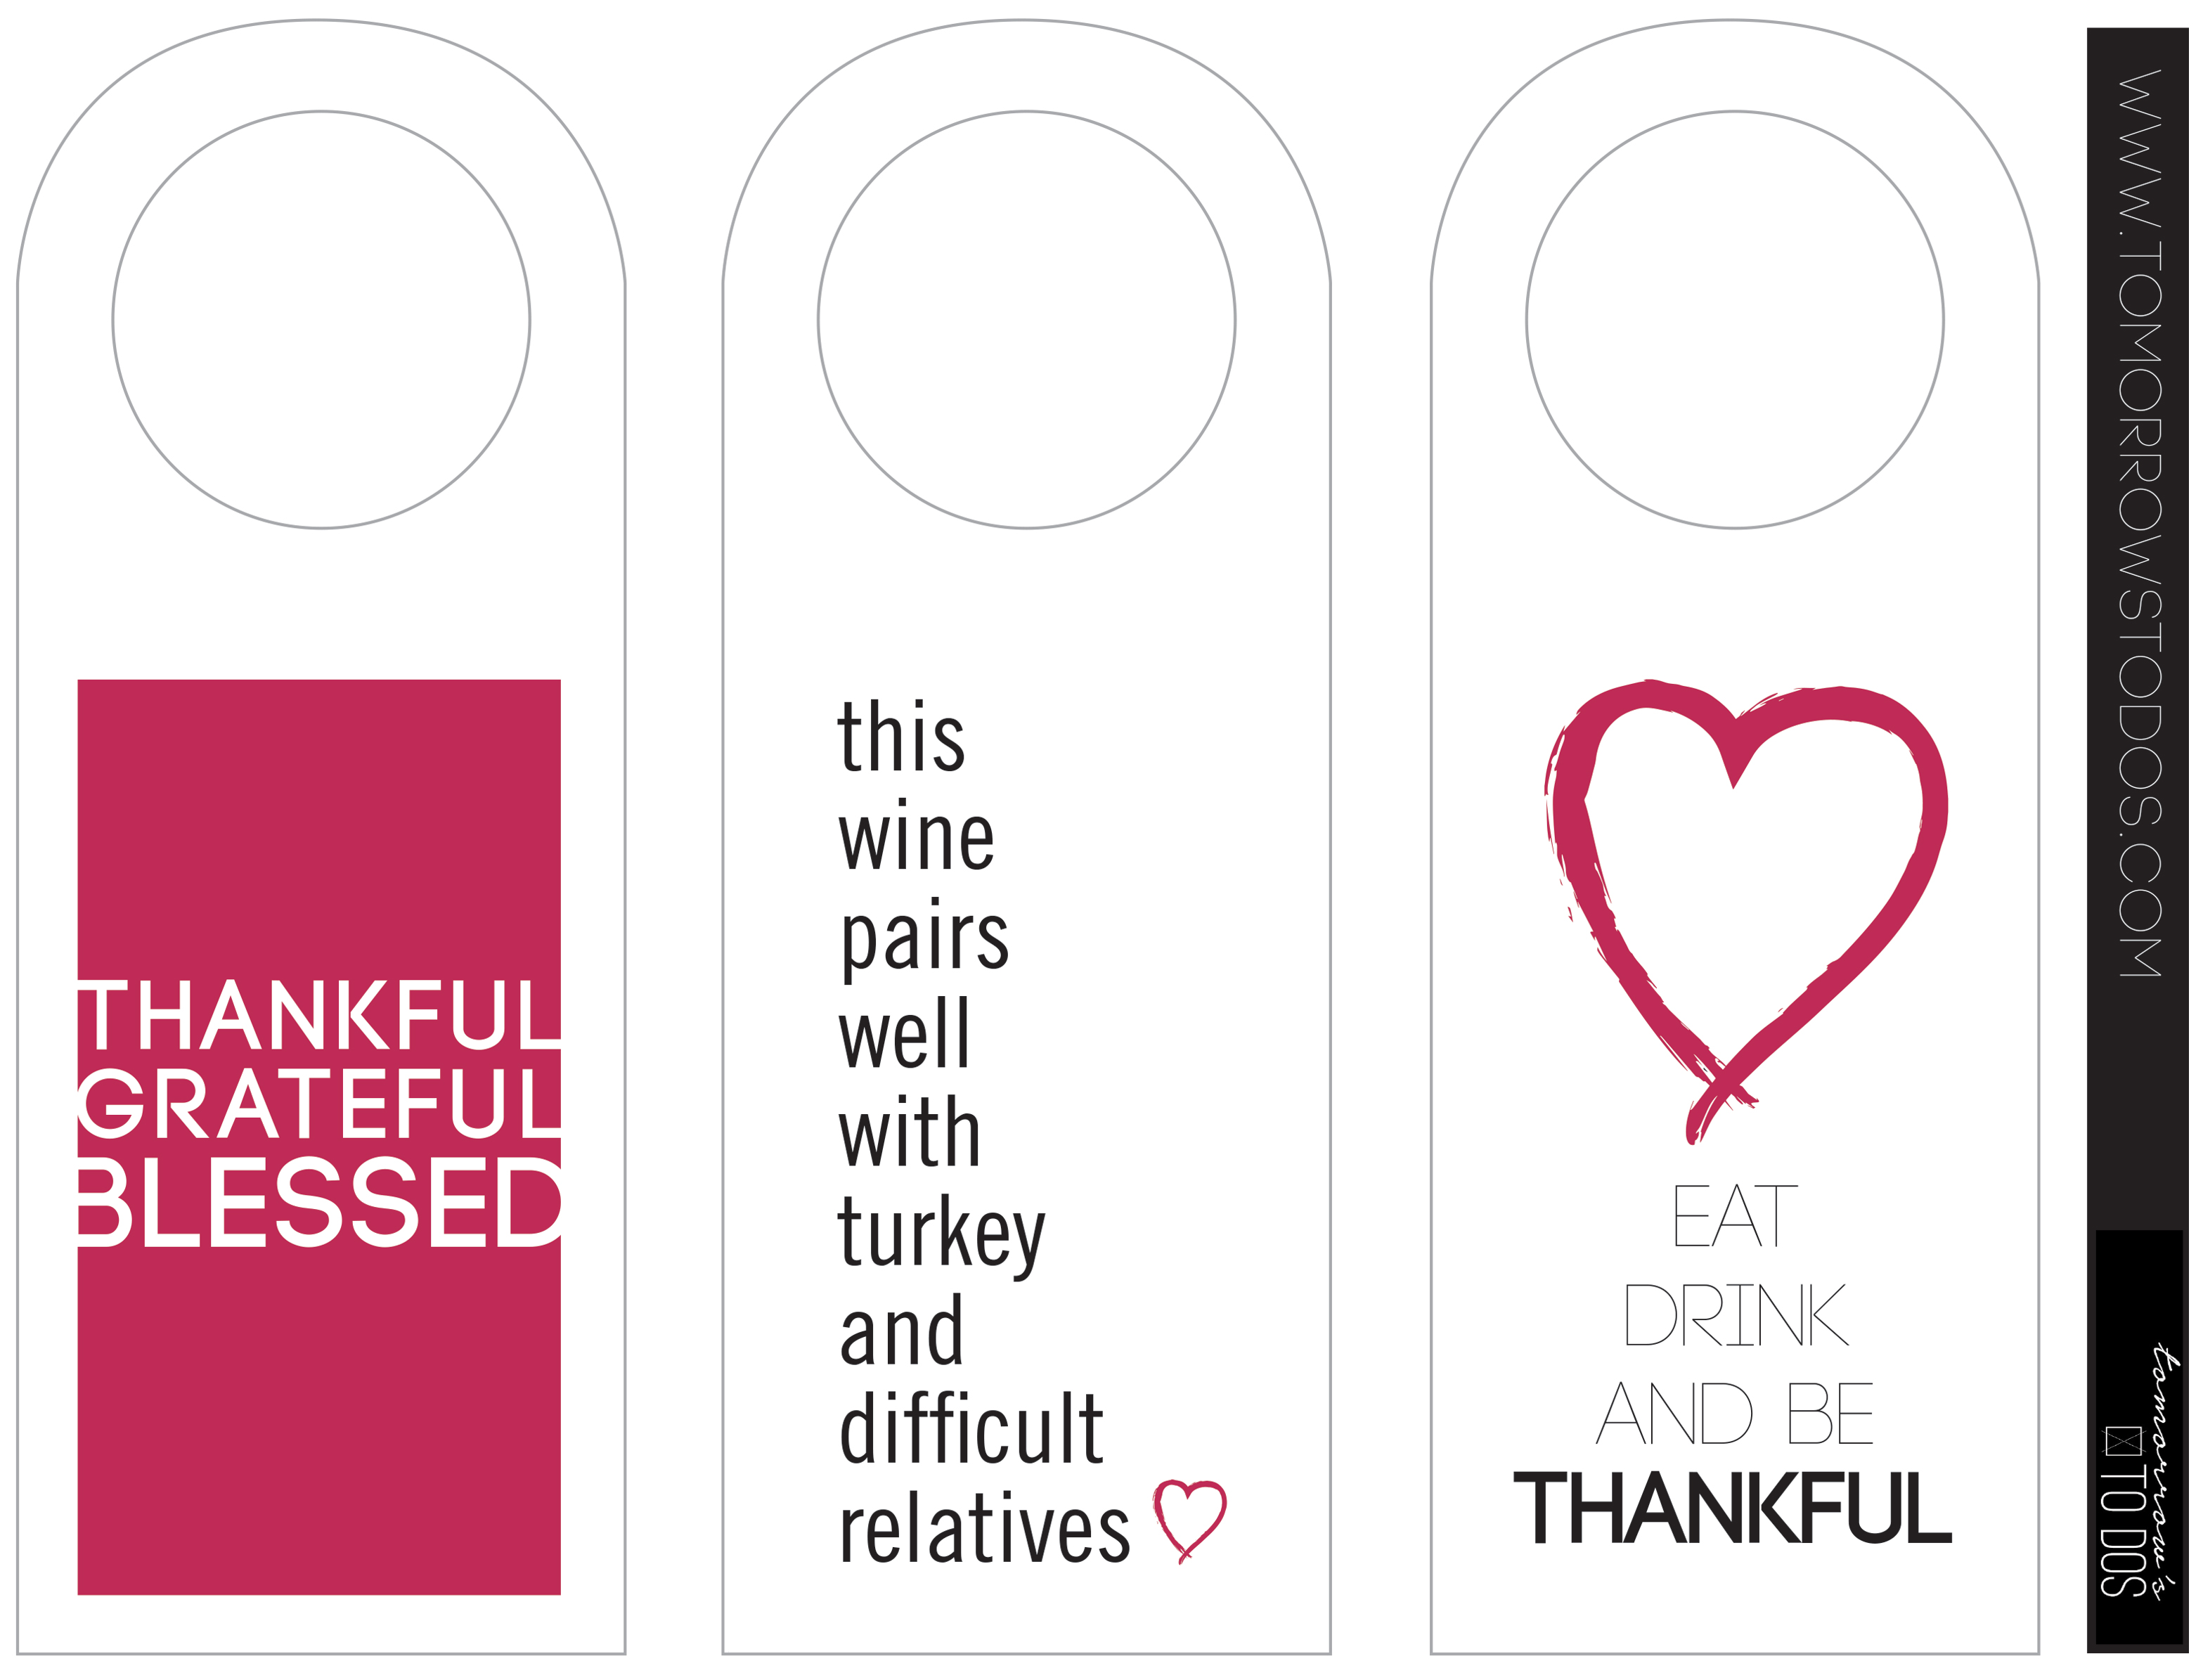 photograph regarding Printable Wine Bottle Tags titled Thanksgiving Printable Wine Bottle Tags Tomorrows In the direction of Dos